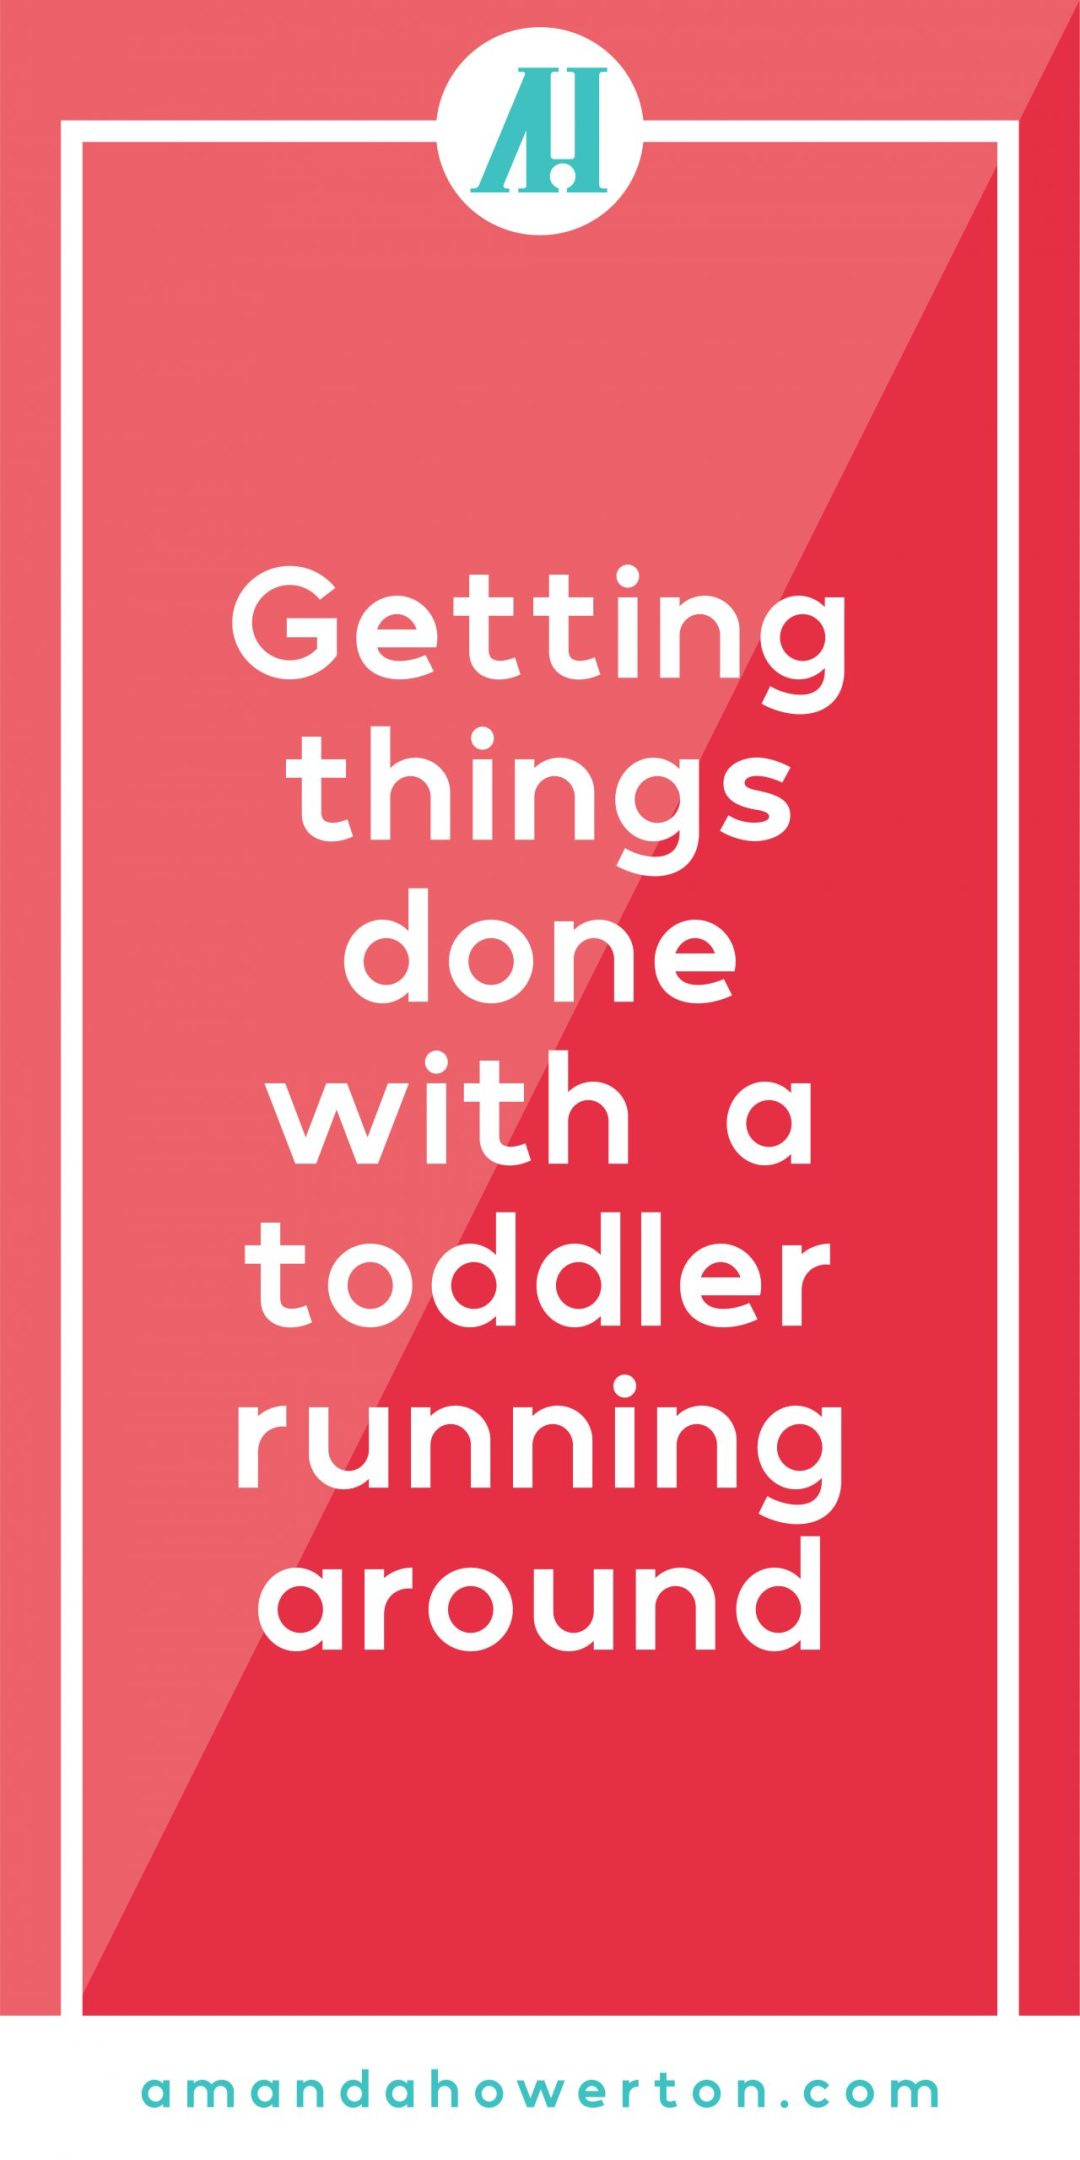 Getting things done with a toddler running around